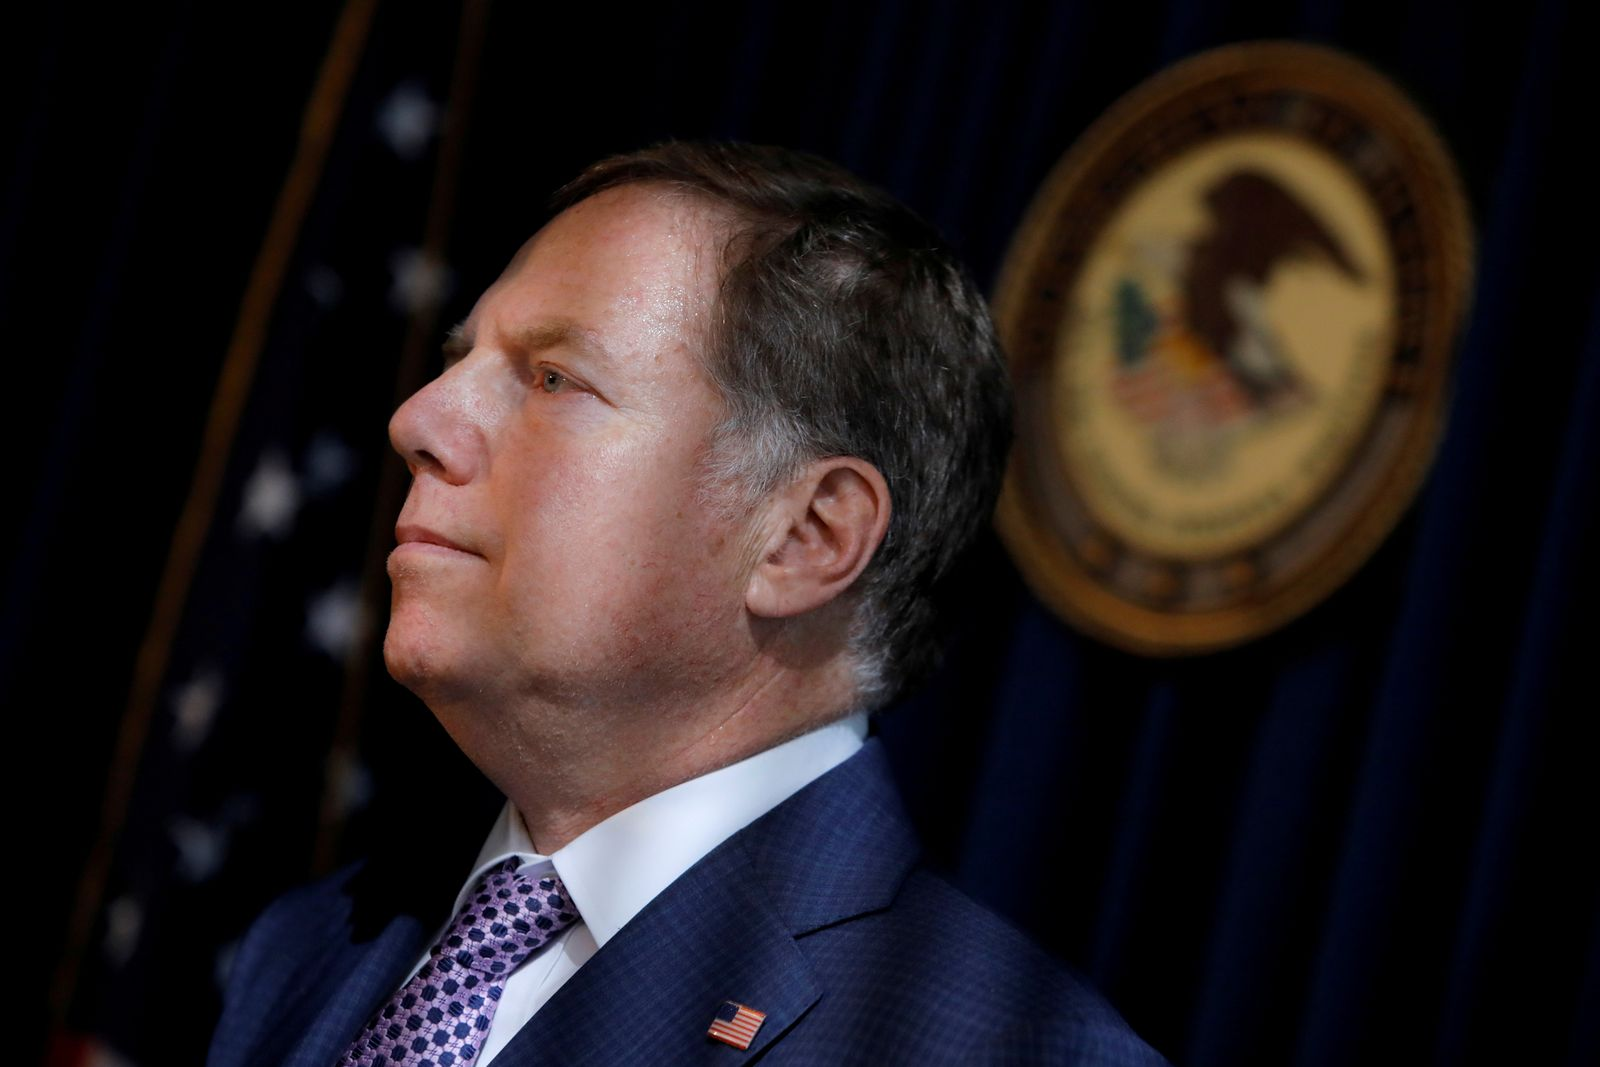 FILE PHOTO: U.S. Attorney for the Southern District Geoffrey S. Berman at a news conference in New York